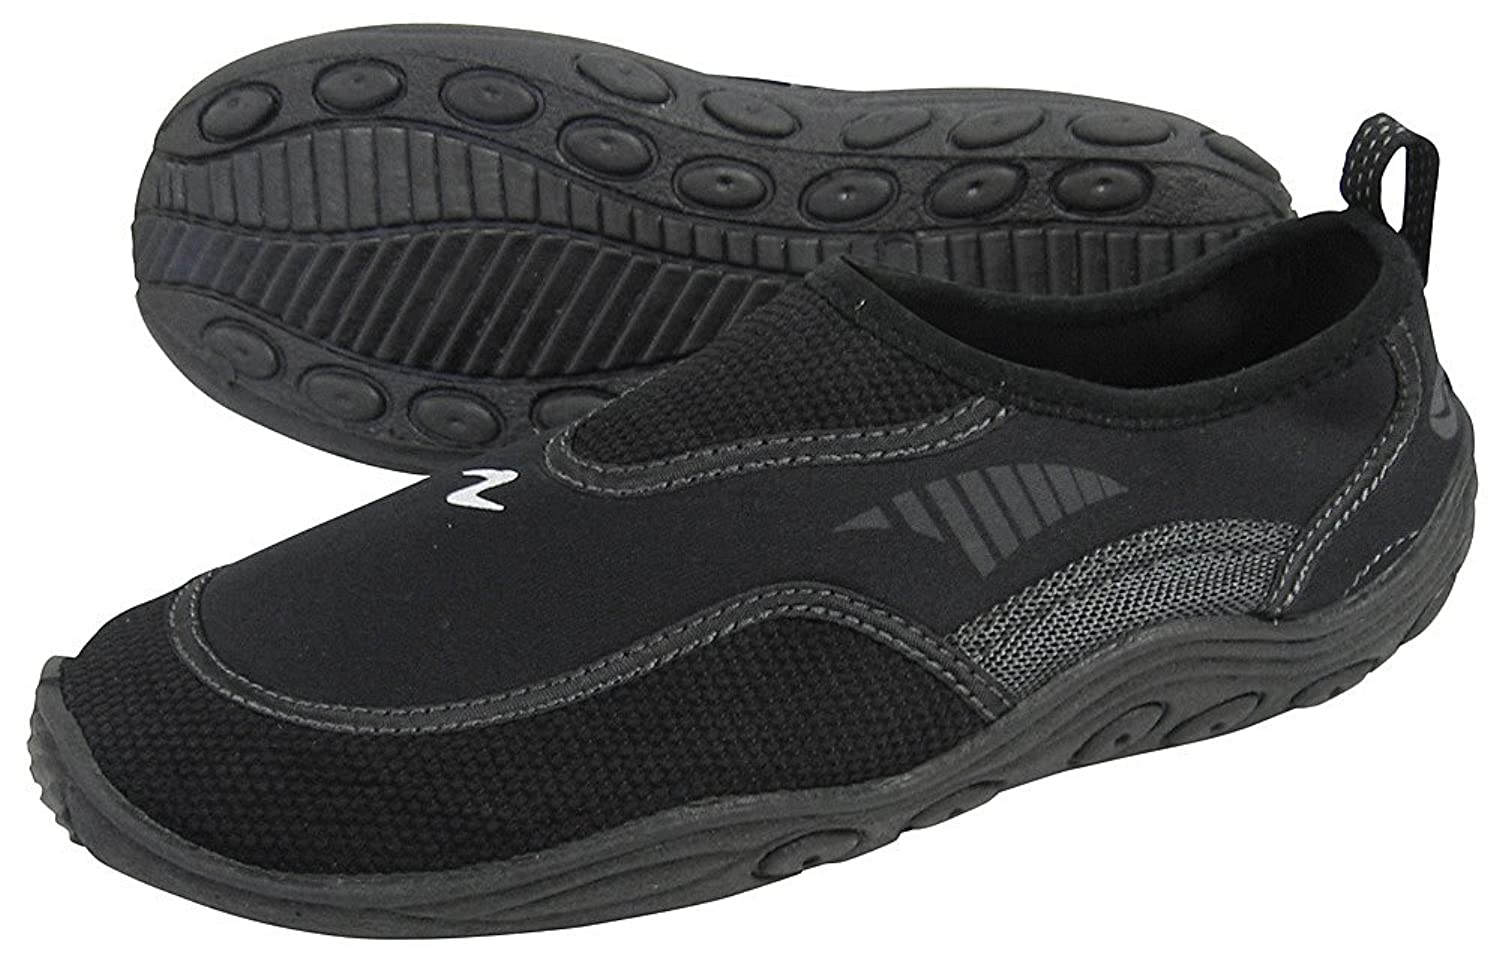 Aqua Lung Sport Seaboard Watershoe for Men